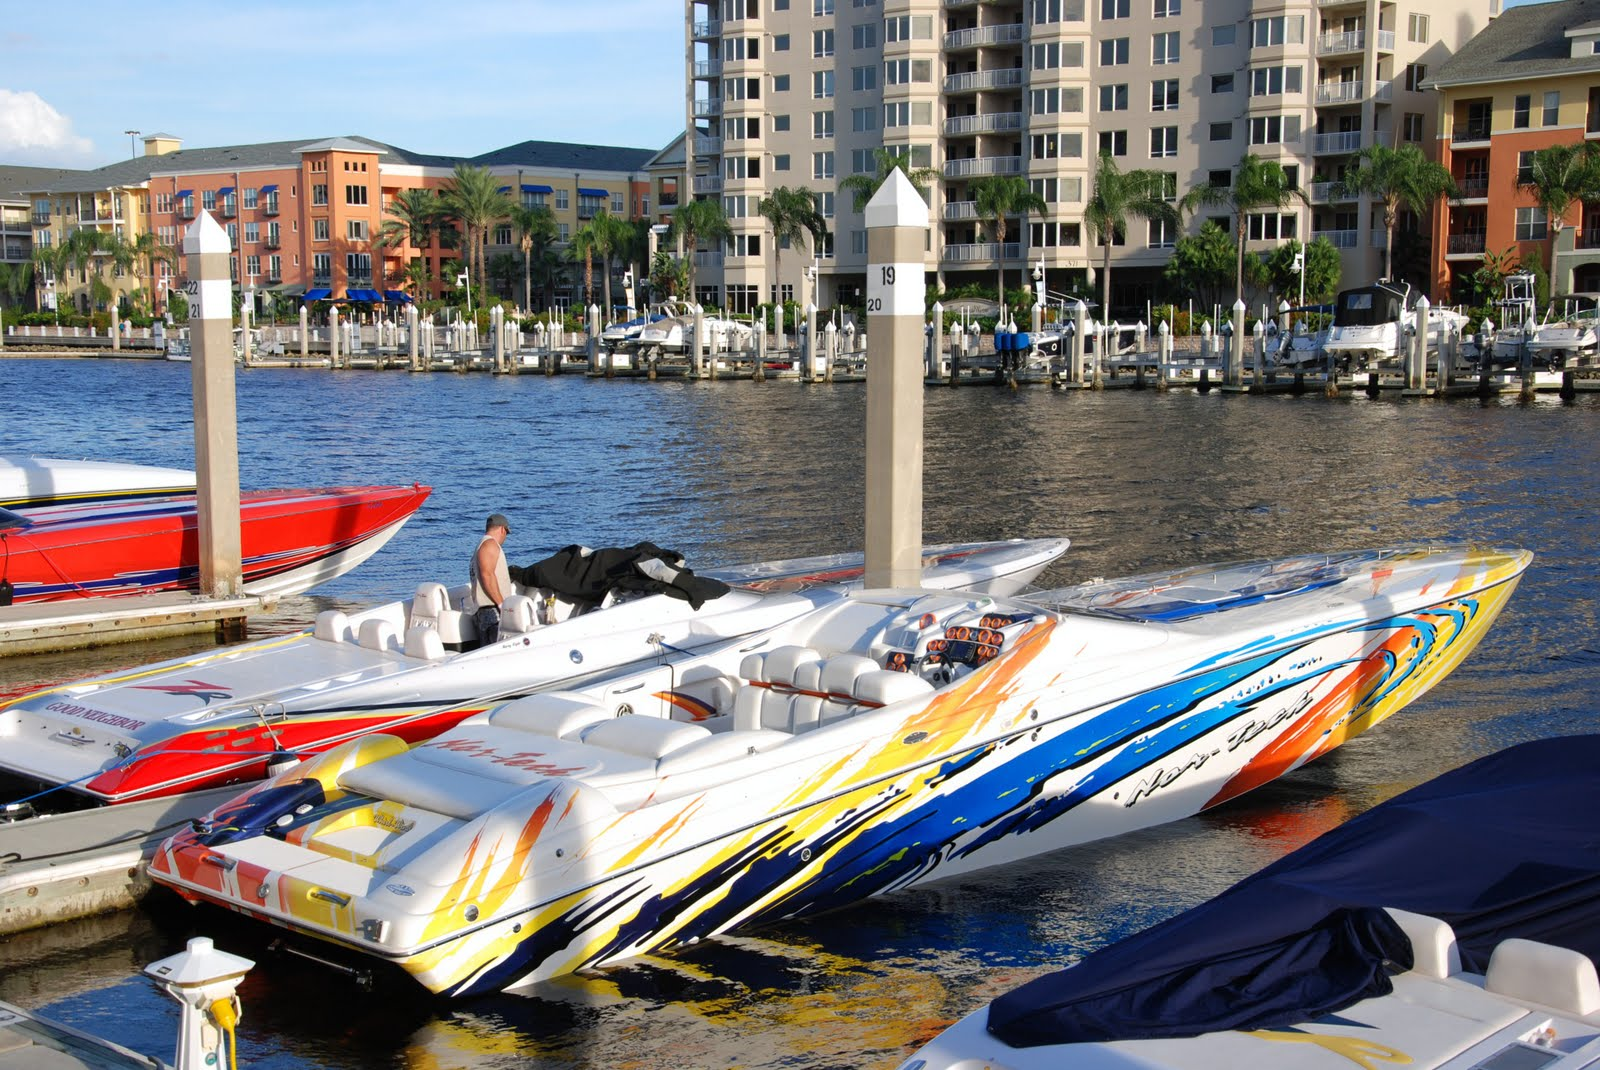 Cool Speed Boats The boat to its left is a Fastest Speedboat In The World